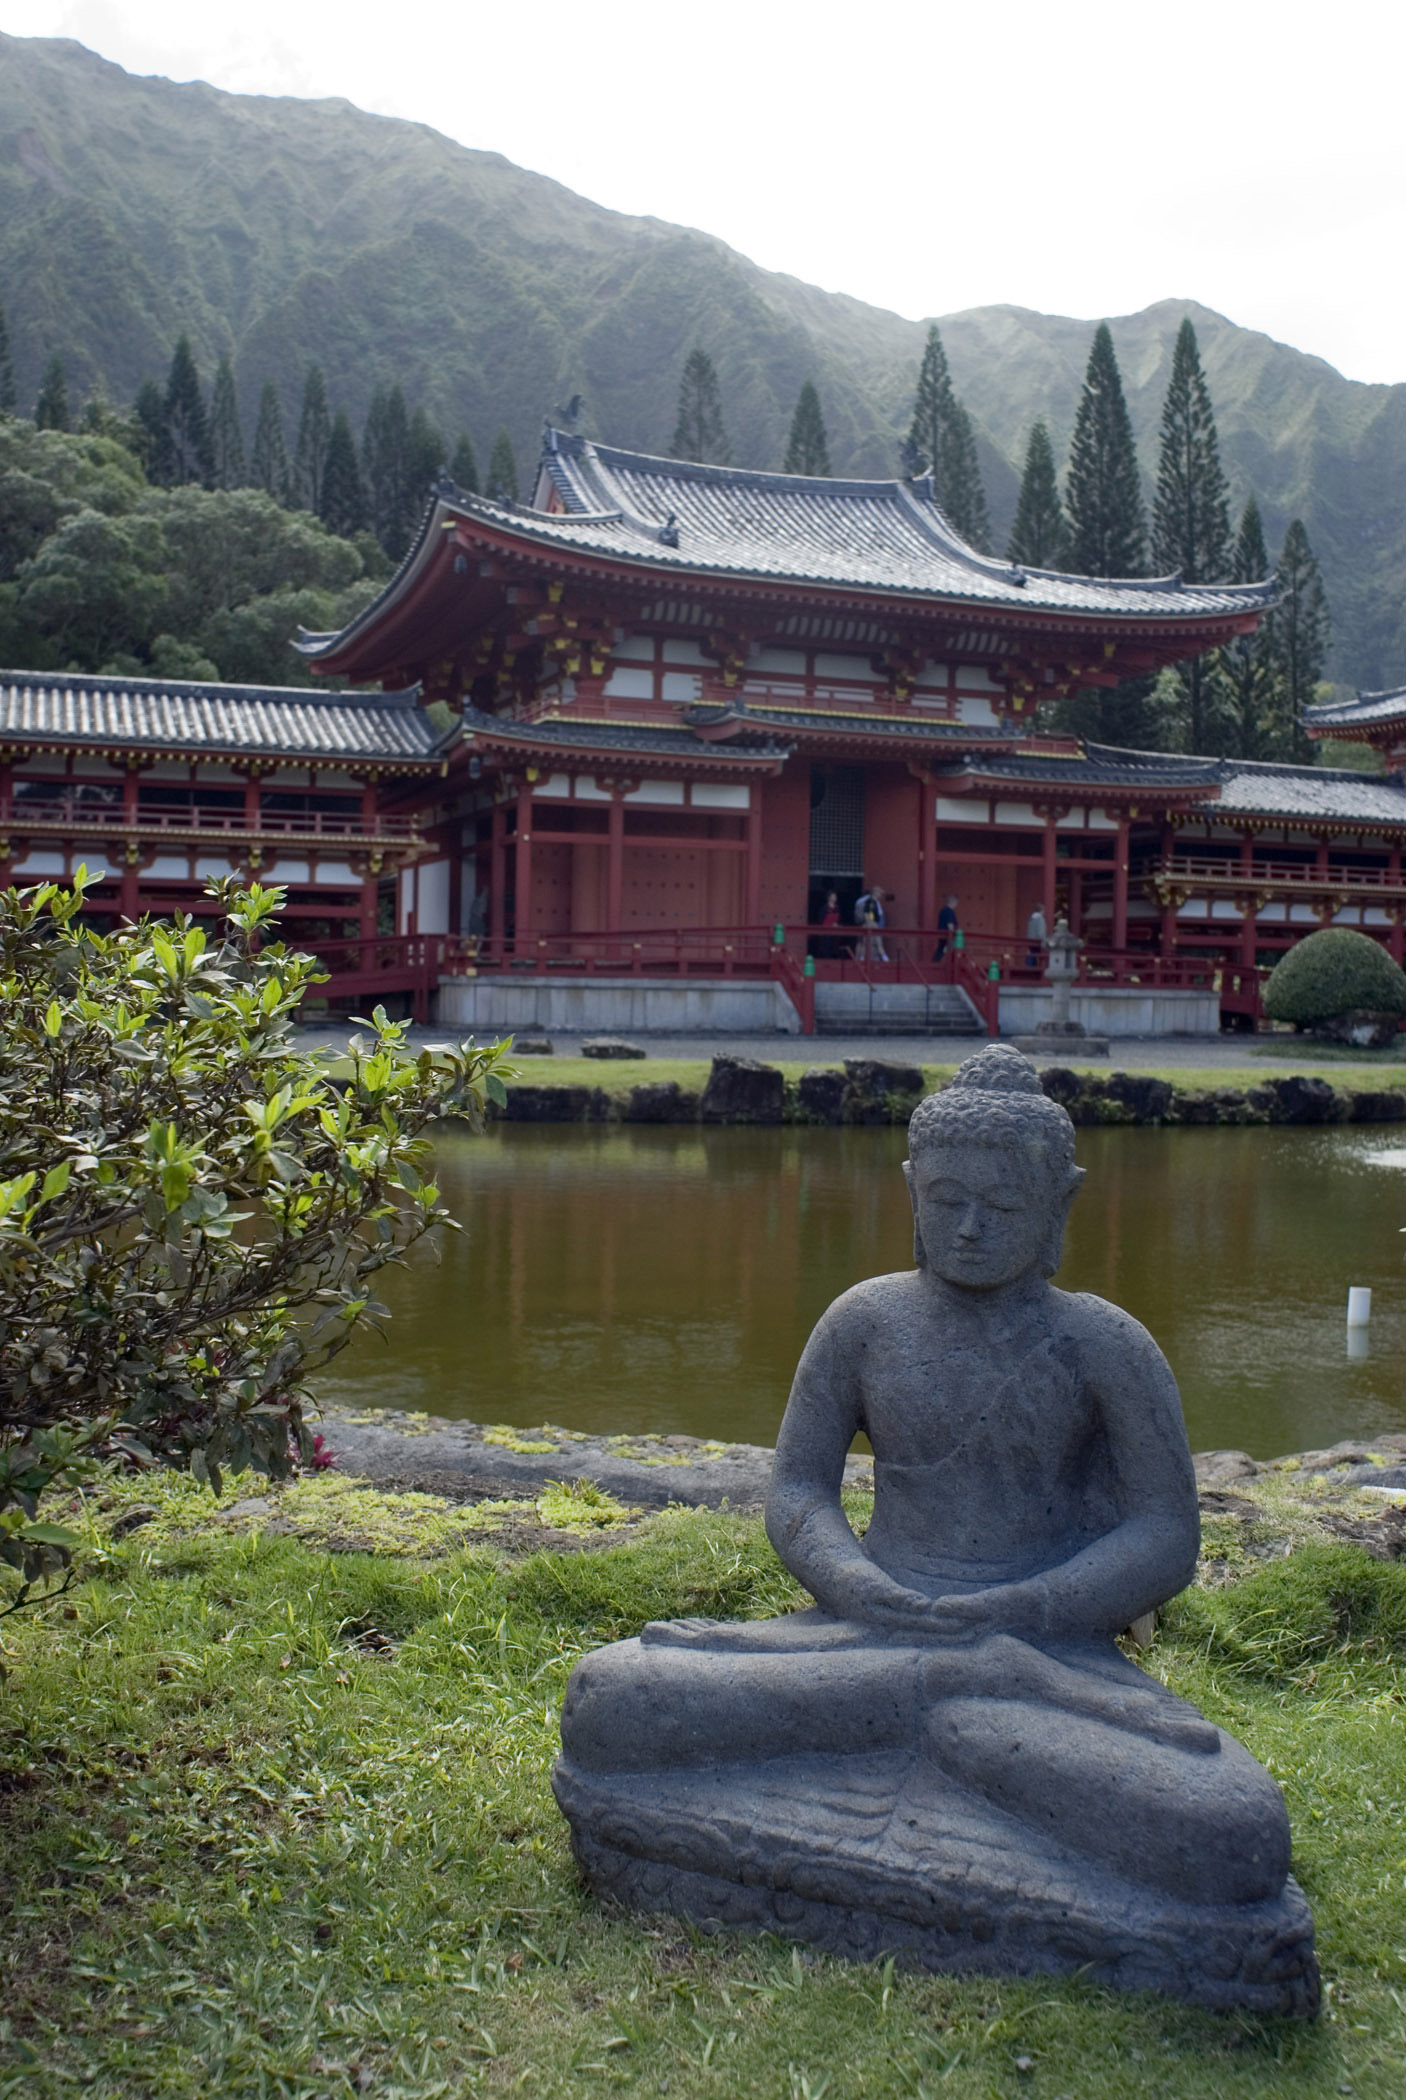 Vintage Sculpture at the Garden Water Side of Famous Byodo-In Buddhist Temple in Hawaii.